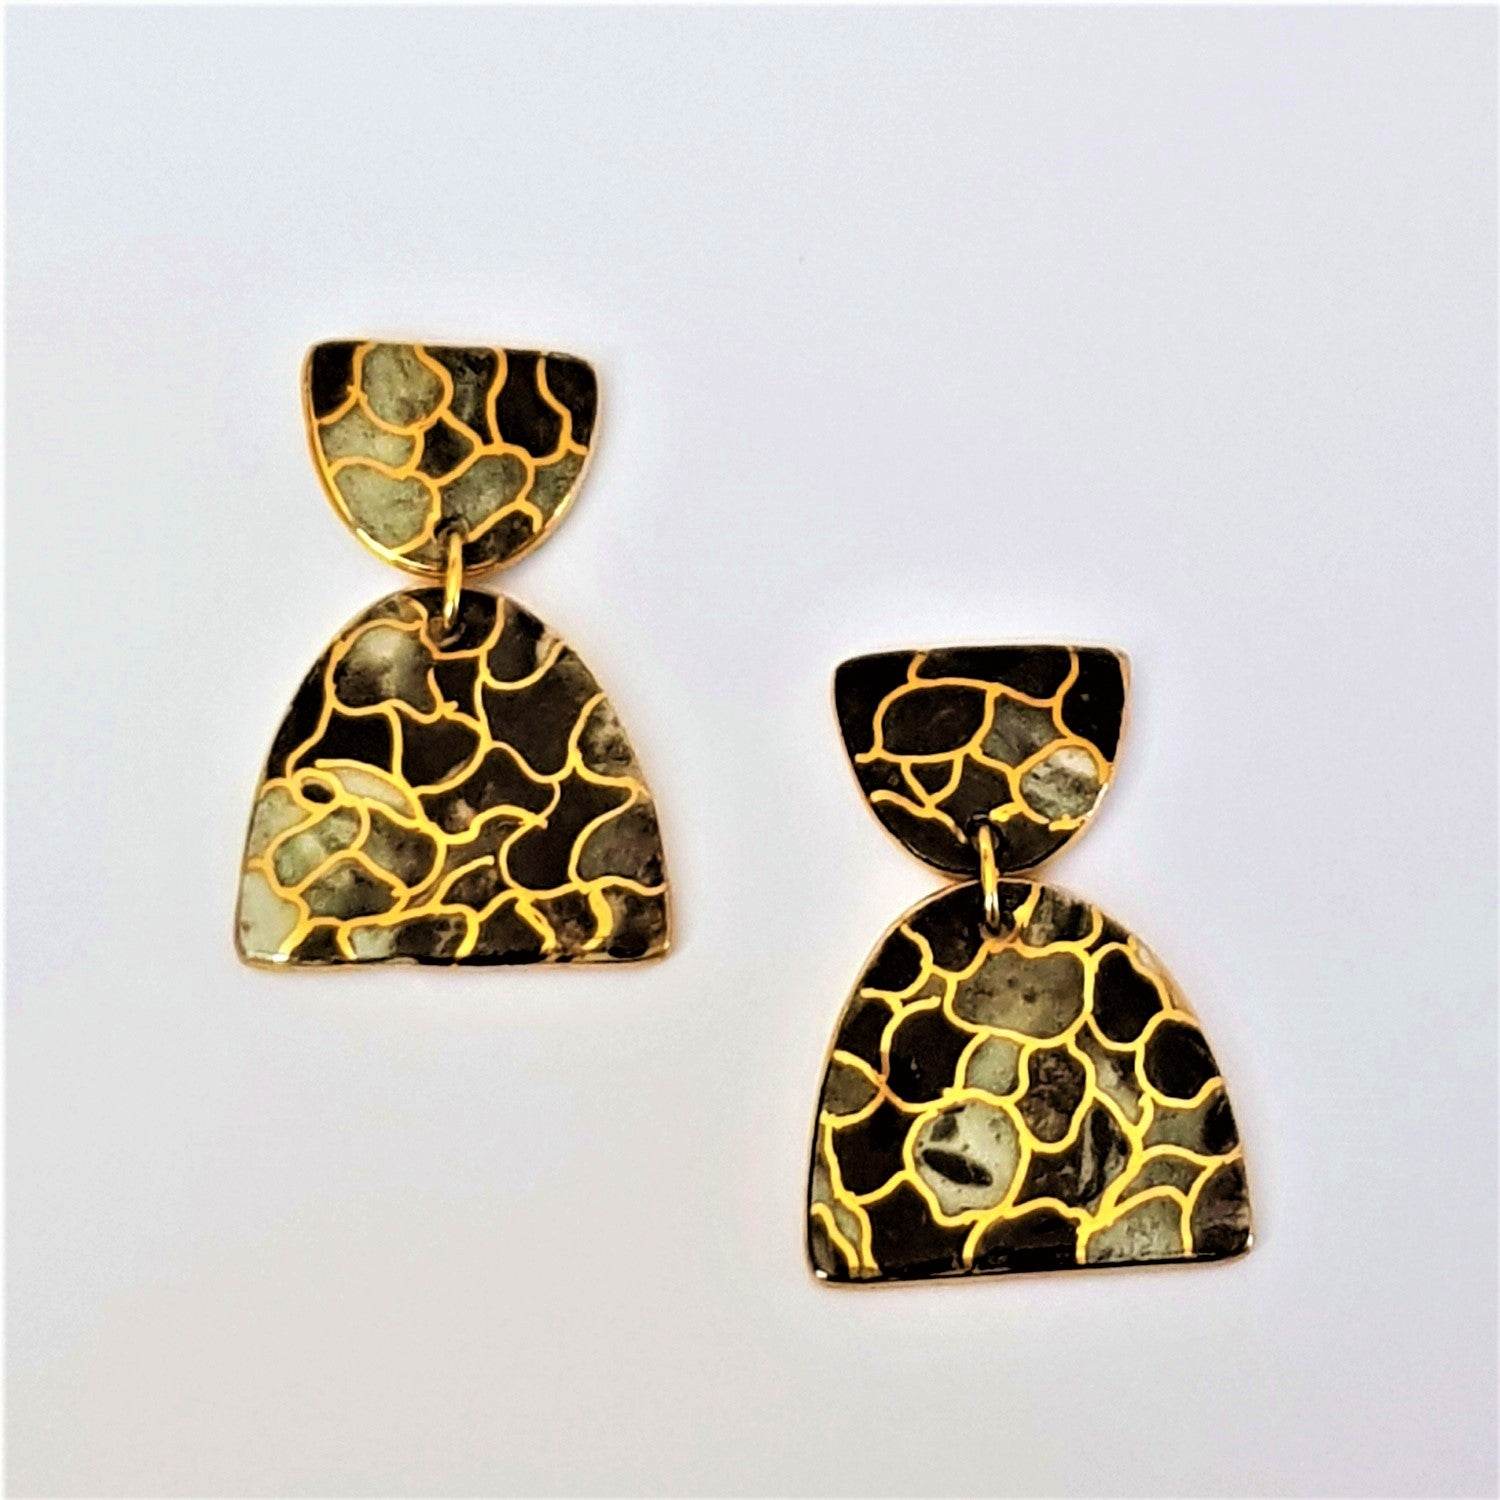 Porcelain statement earrings in black white and gold